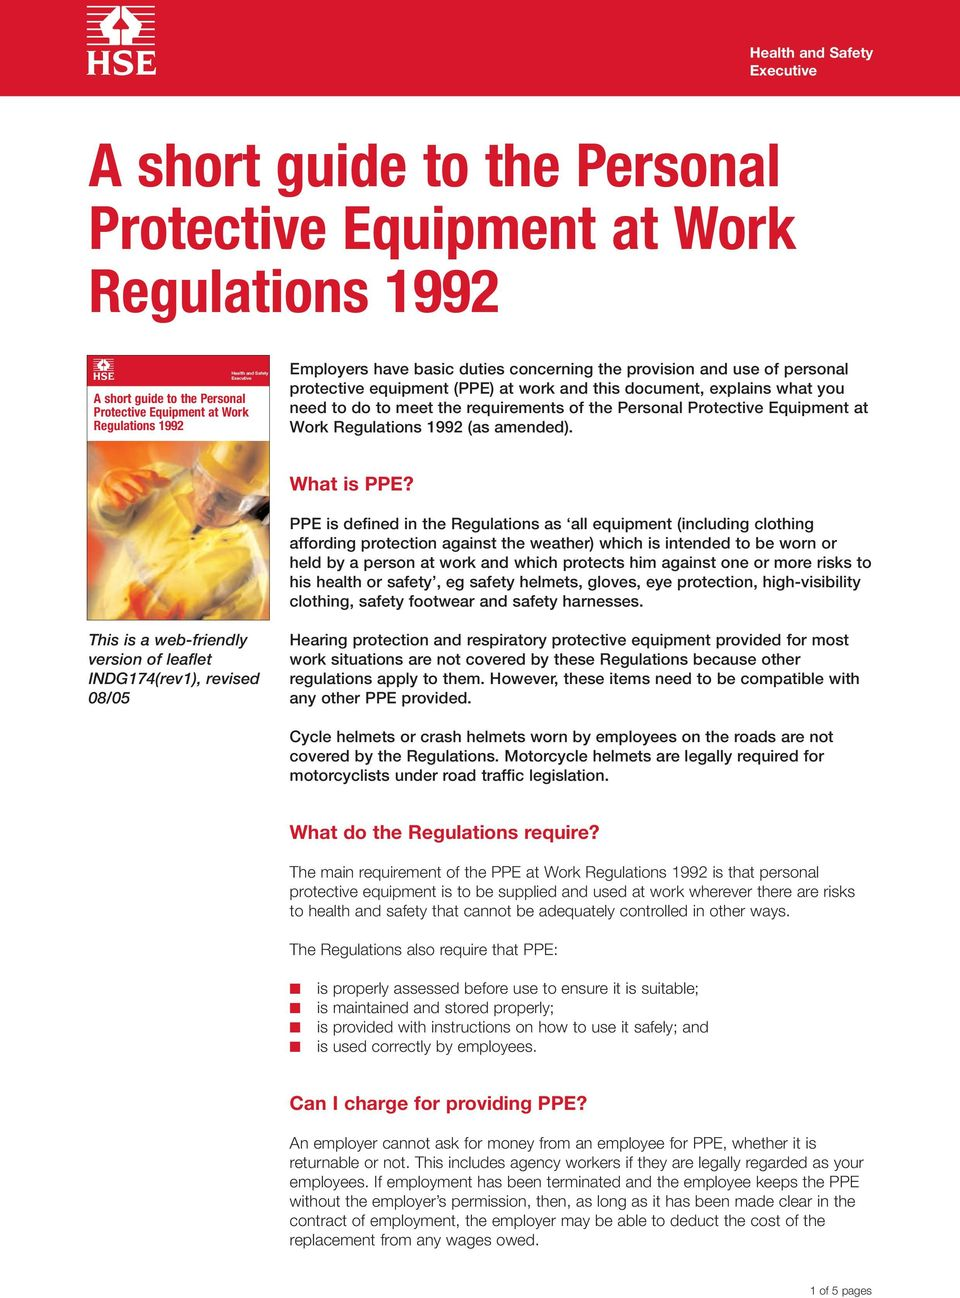 Regulations 1992 (as amended). What is PPE?